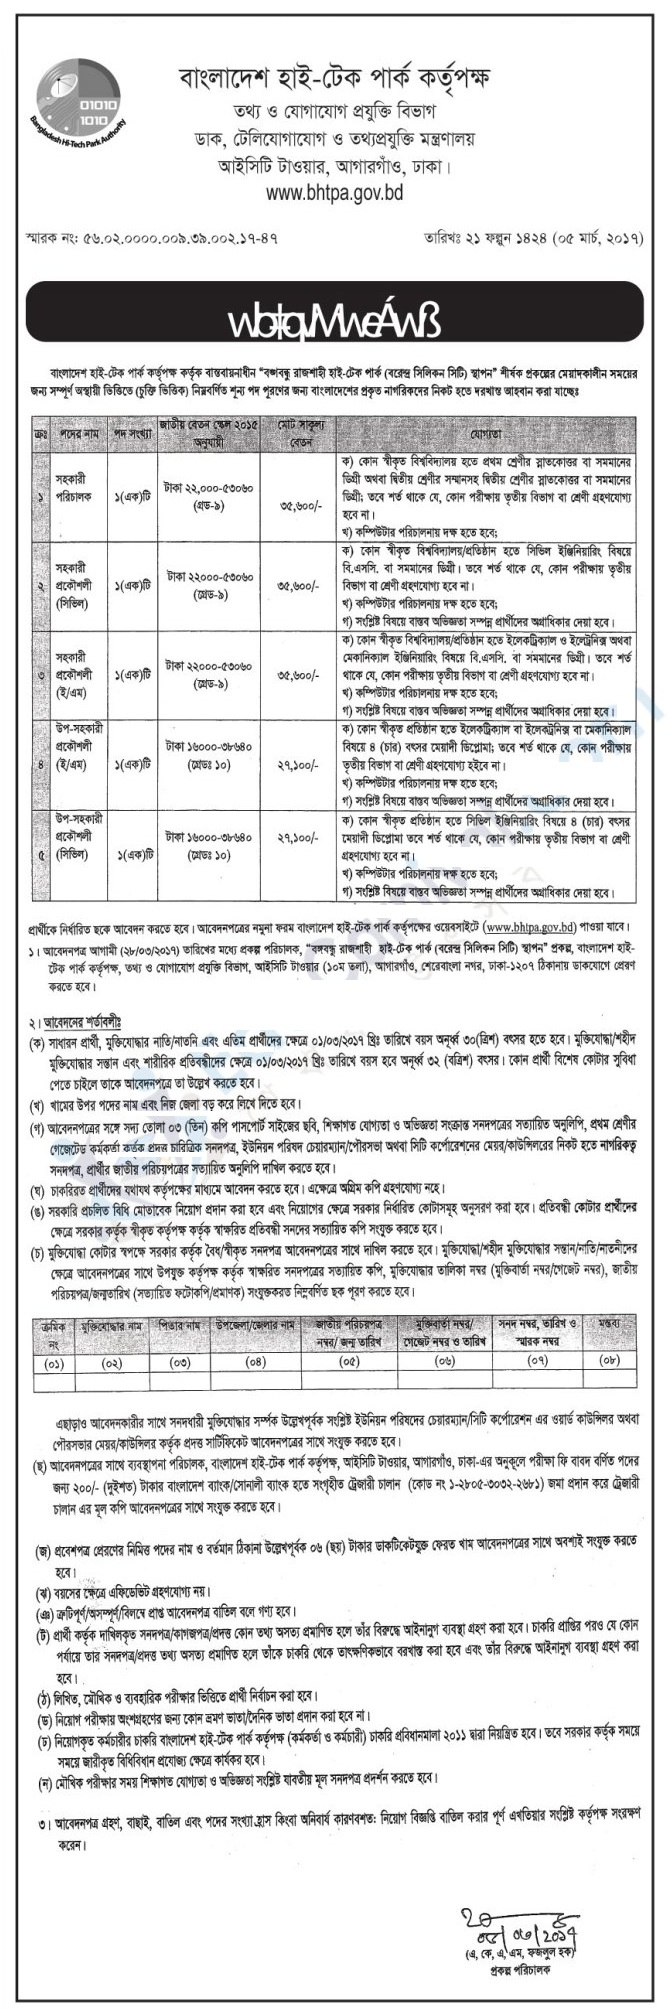 Postal, Telecommunications and Information Technology Ministry Job Circular 2017